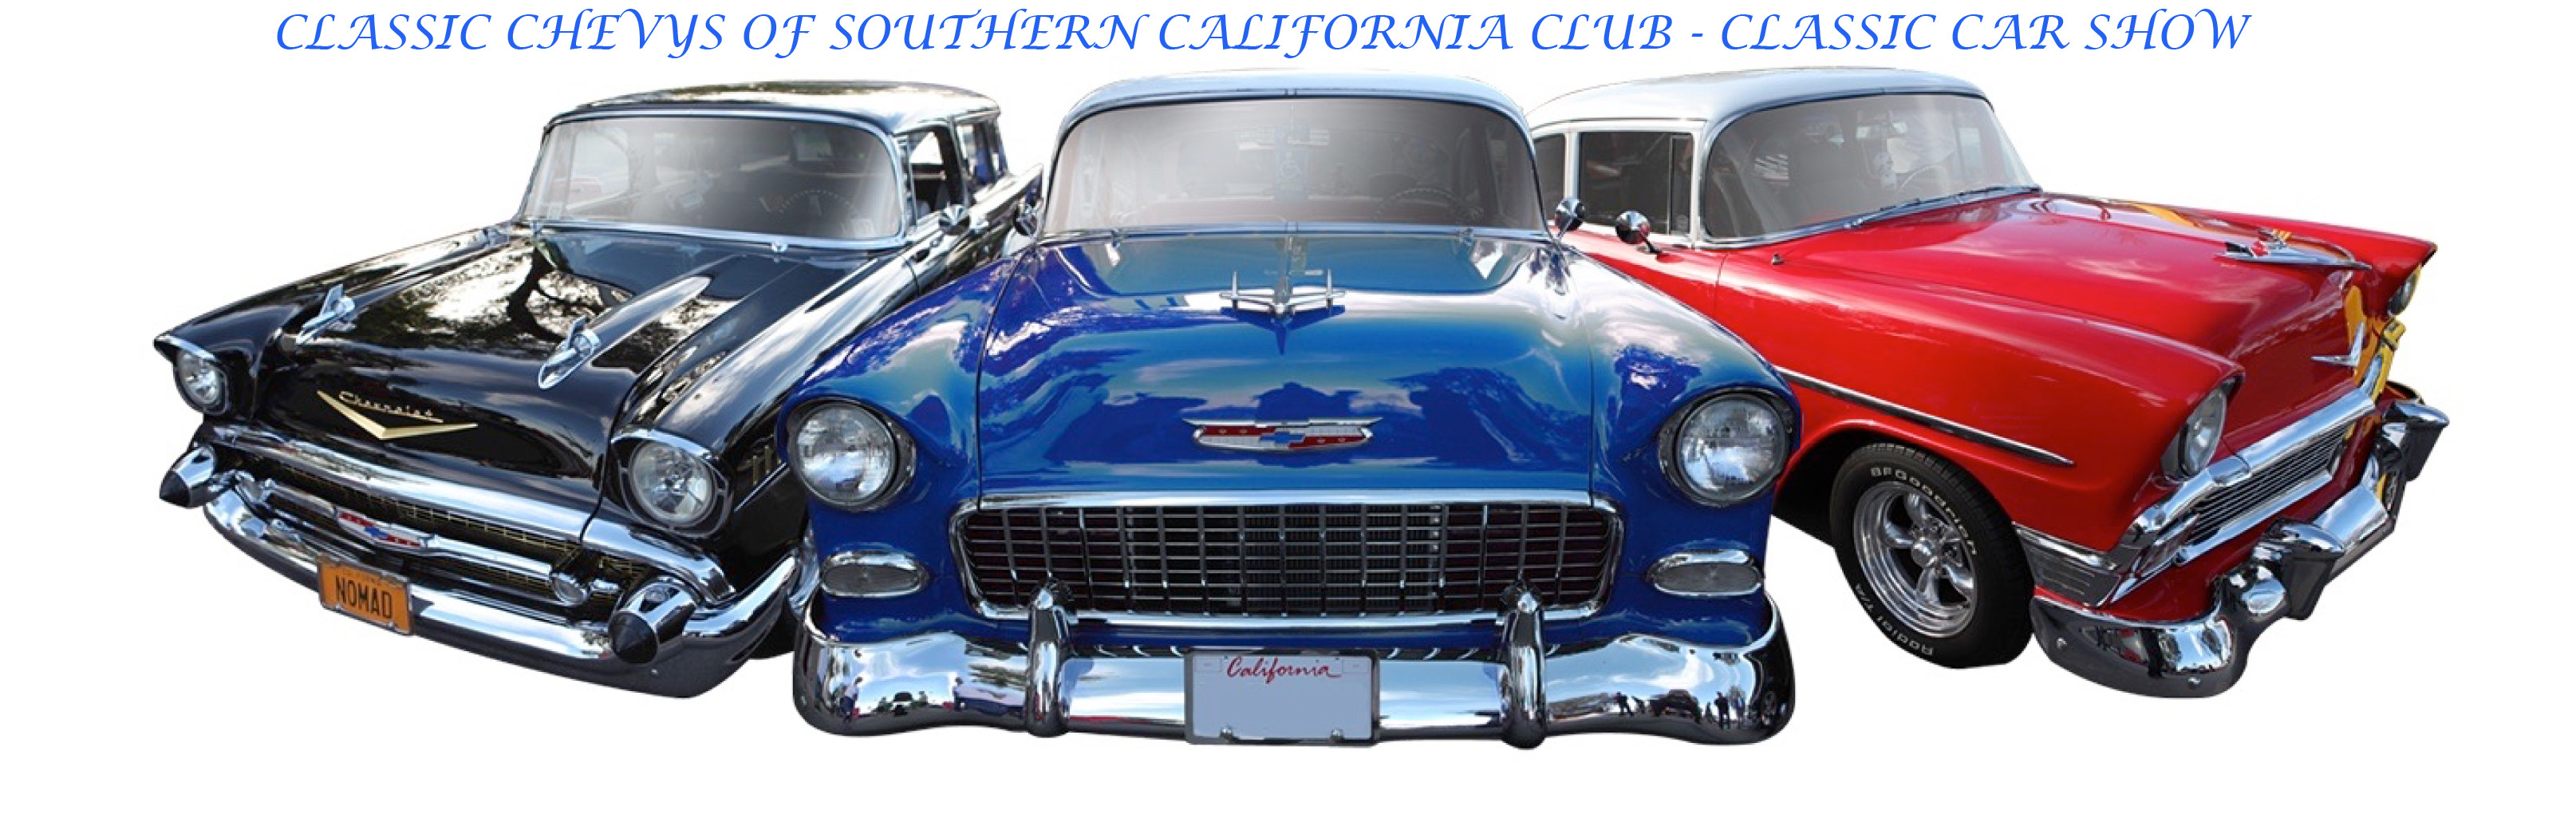 Chevy, Classic Chevys show supports youth — and crowns a Ford, ClassicCars.com Journal